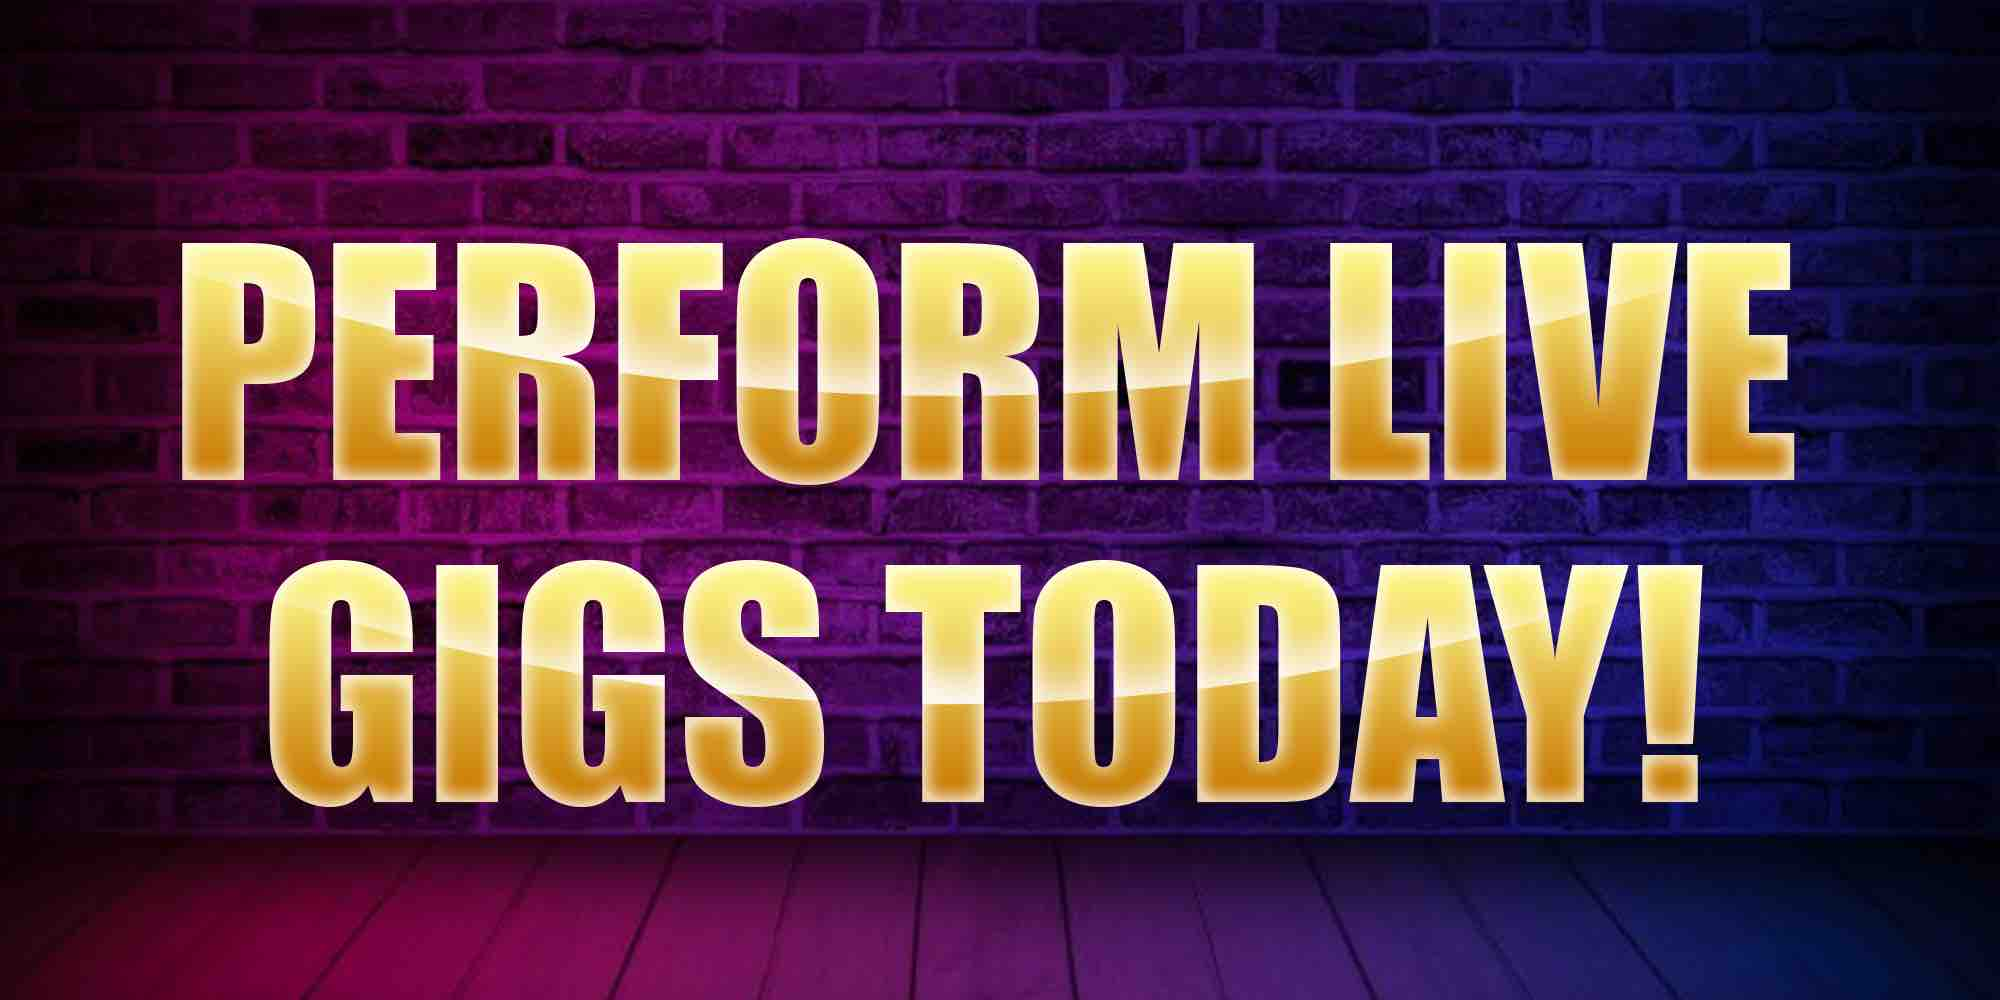 Perform live gigs today